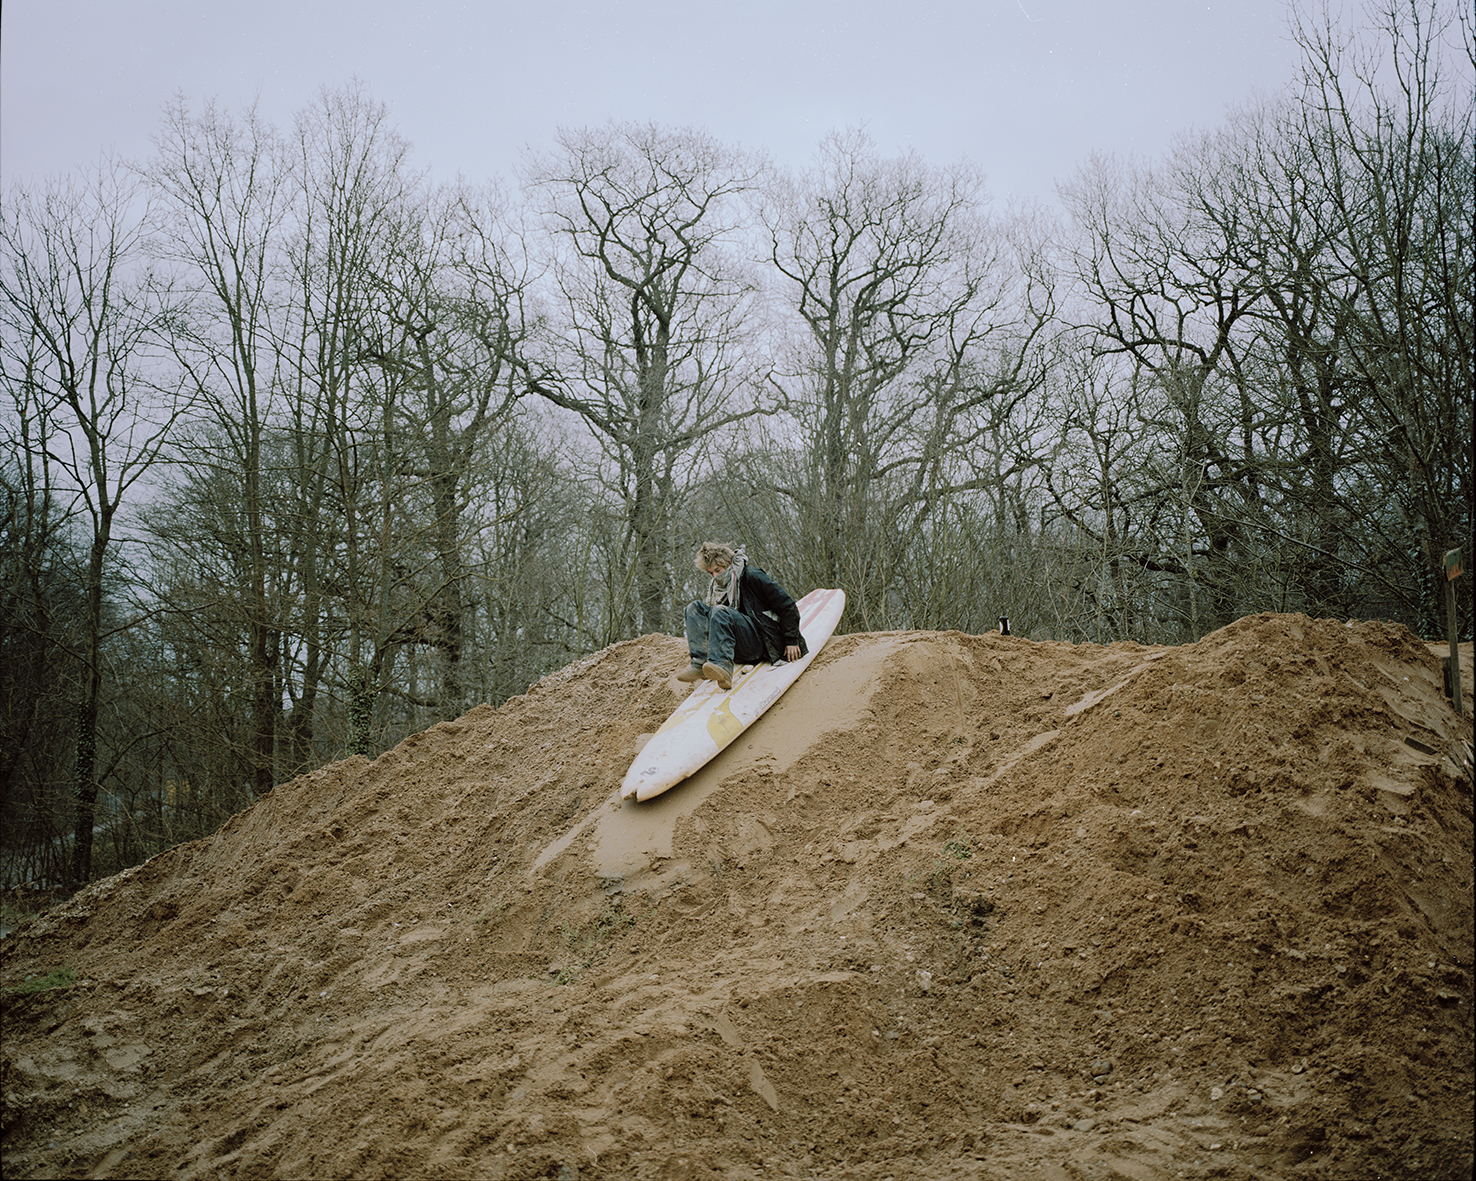 'Hole' surfs down a hill of mud.